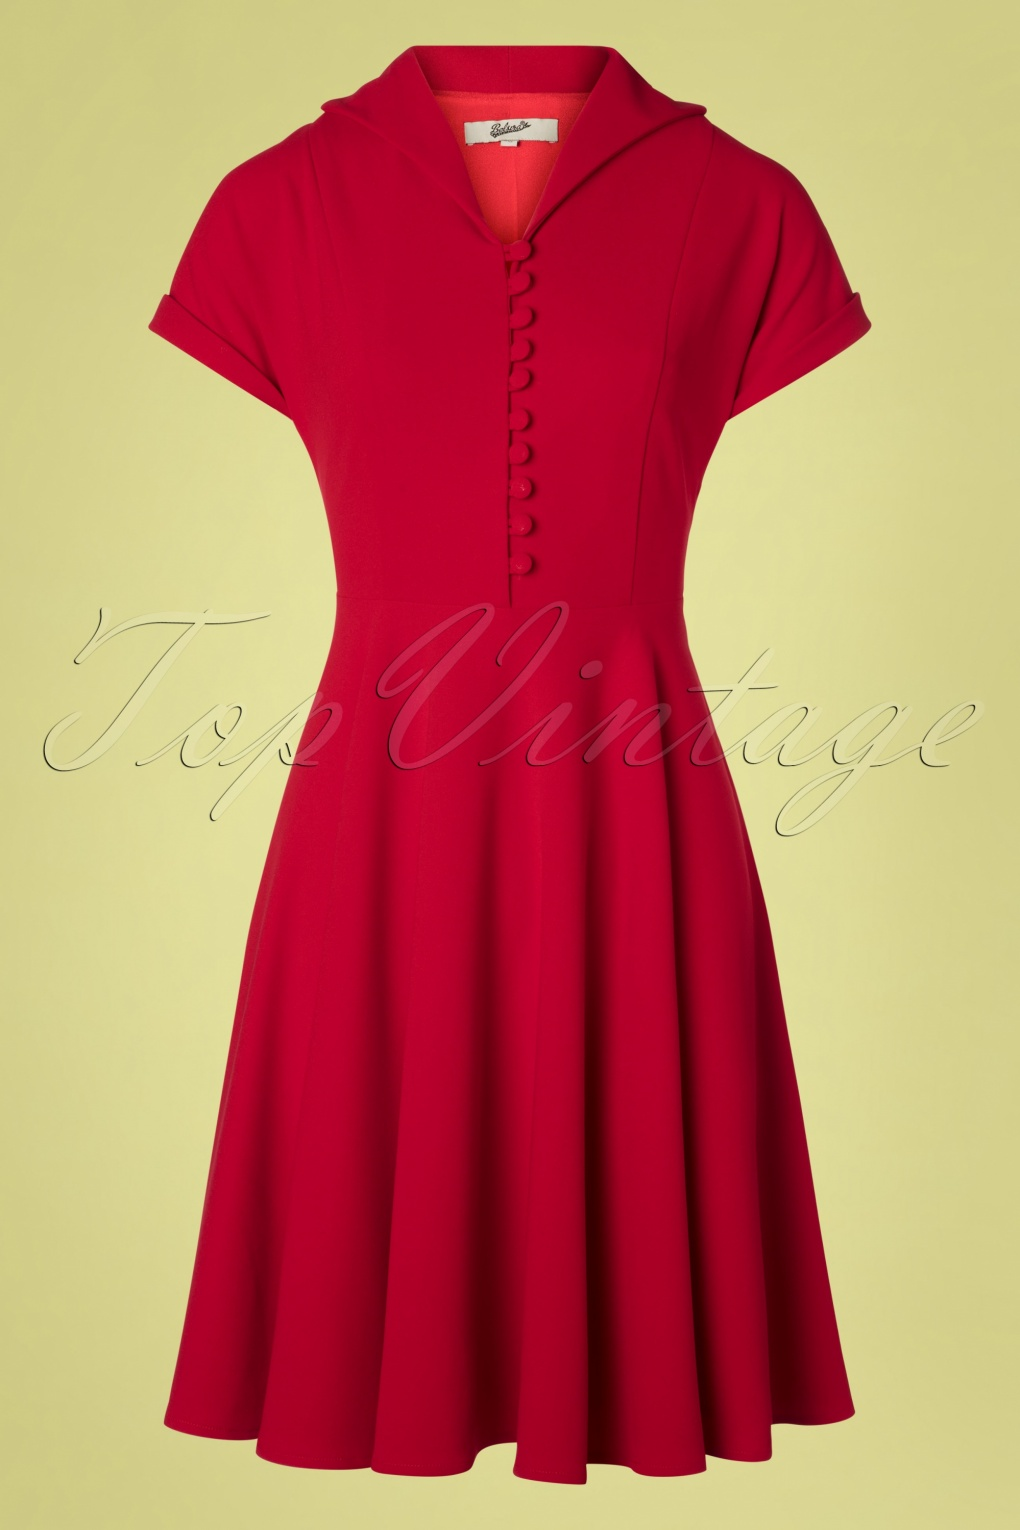 Swing Dance Clothing You Can Dance In 40s Valencia Swing Dress in Deep Red £76.82 AT vintagedancer.com